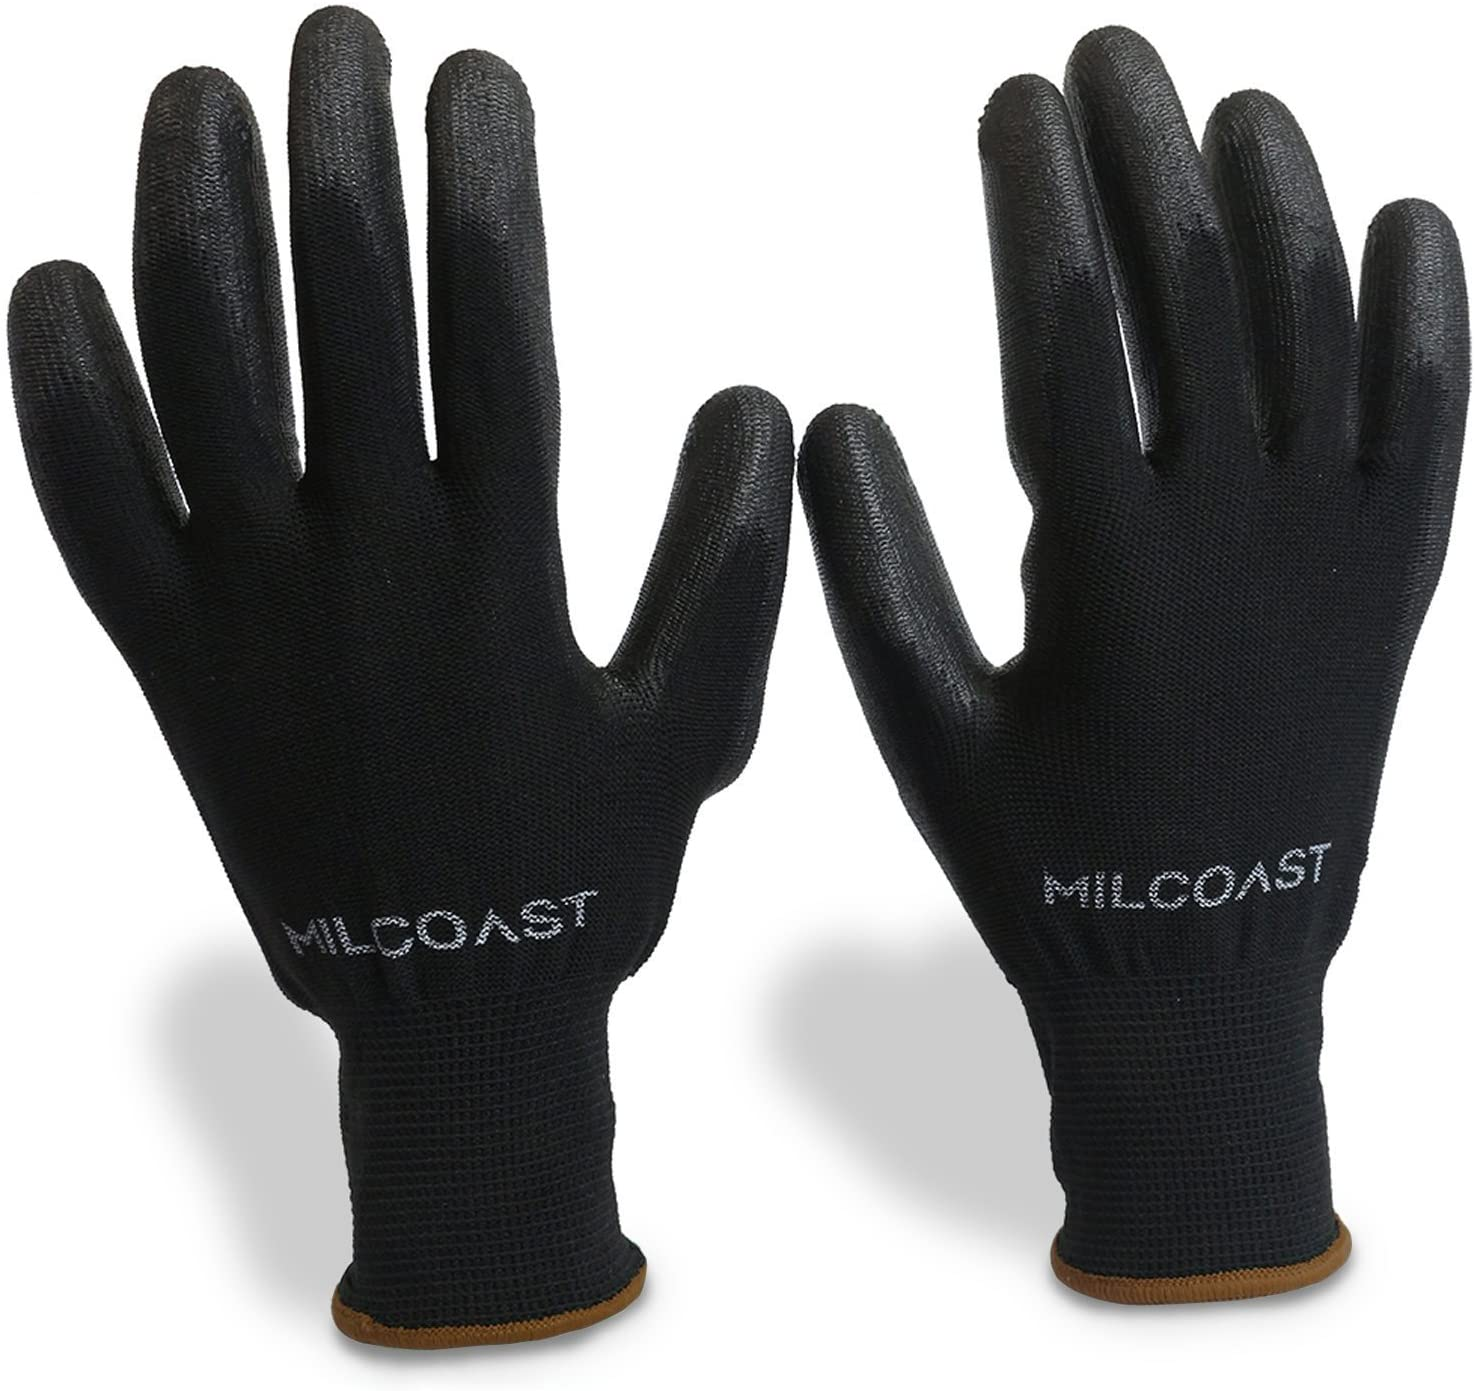 Milcoast Breathable Ultra-Thin Flexible Gloves Polyurethane Palm Coated for Work and Handling - Pack of 20 Pairs (Large)